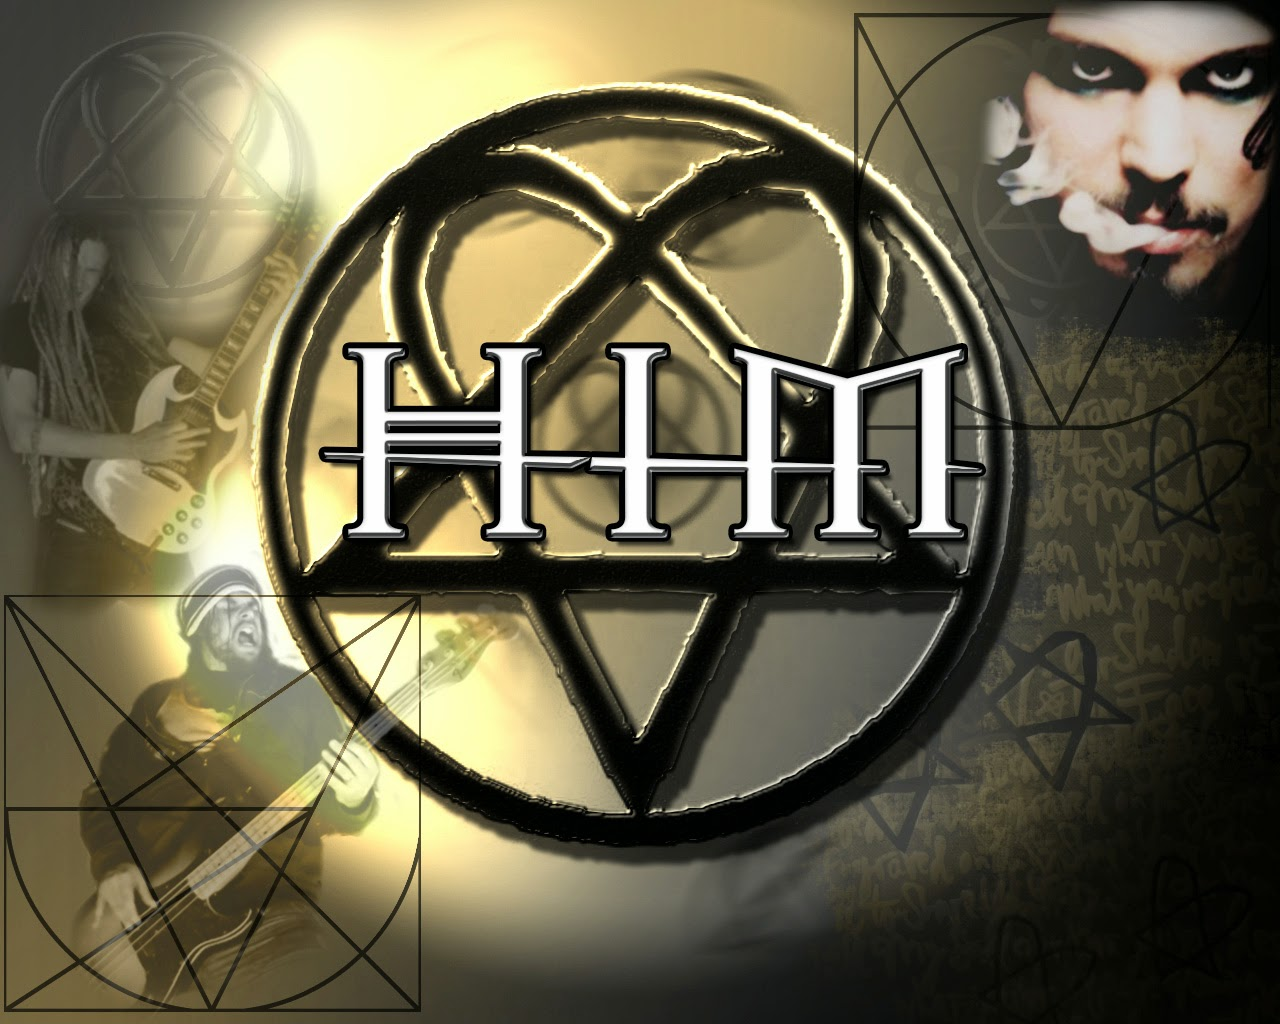 "HIM was formed in 1991 by vocalist Ville Valo, guitarist Mikko ""Linde"" Lindström, and bassist Mikko ""Migé"" Paananen, HIM's current lineup consists of Valo, Linde, Migé, and Janne ""Emerson Burton"" Puurtinen on keyboards. http://www.jinglejanglejungle.net/2015/02/eu2.html #HIM"